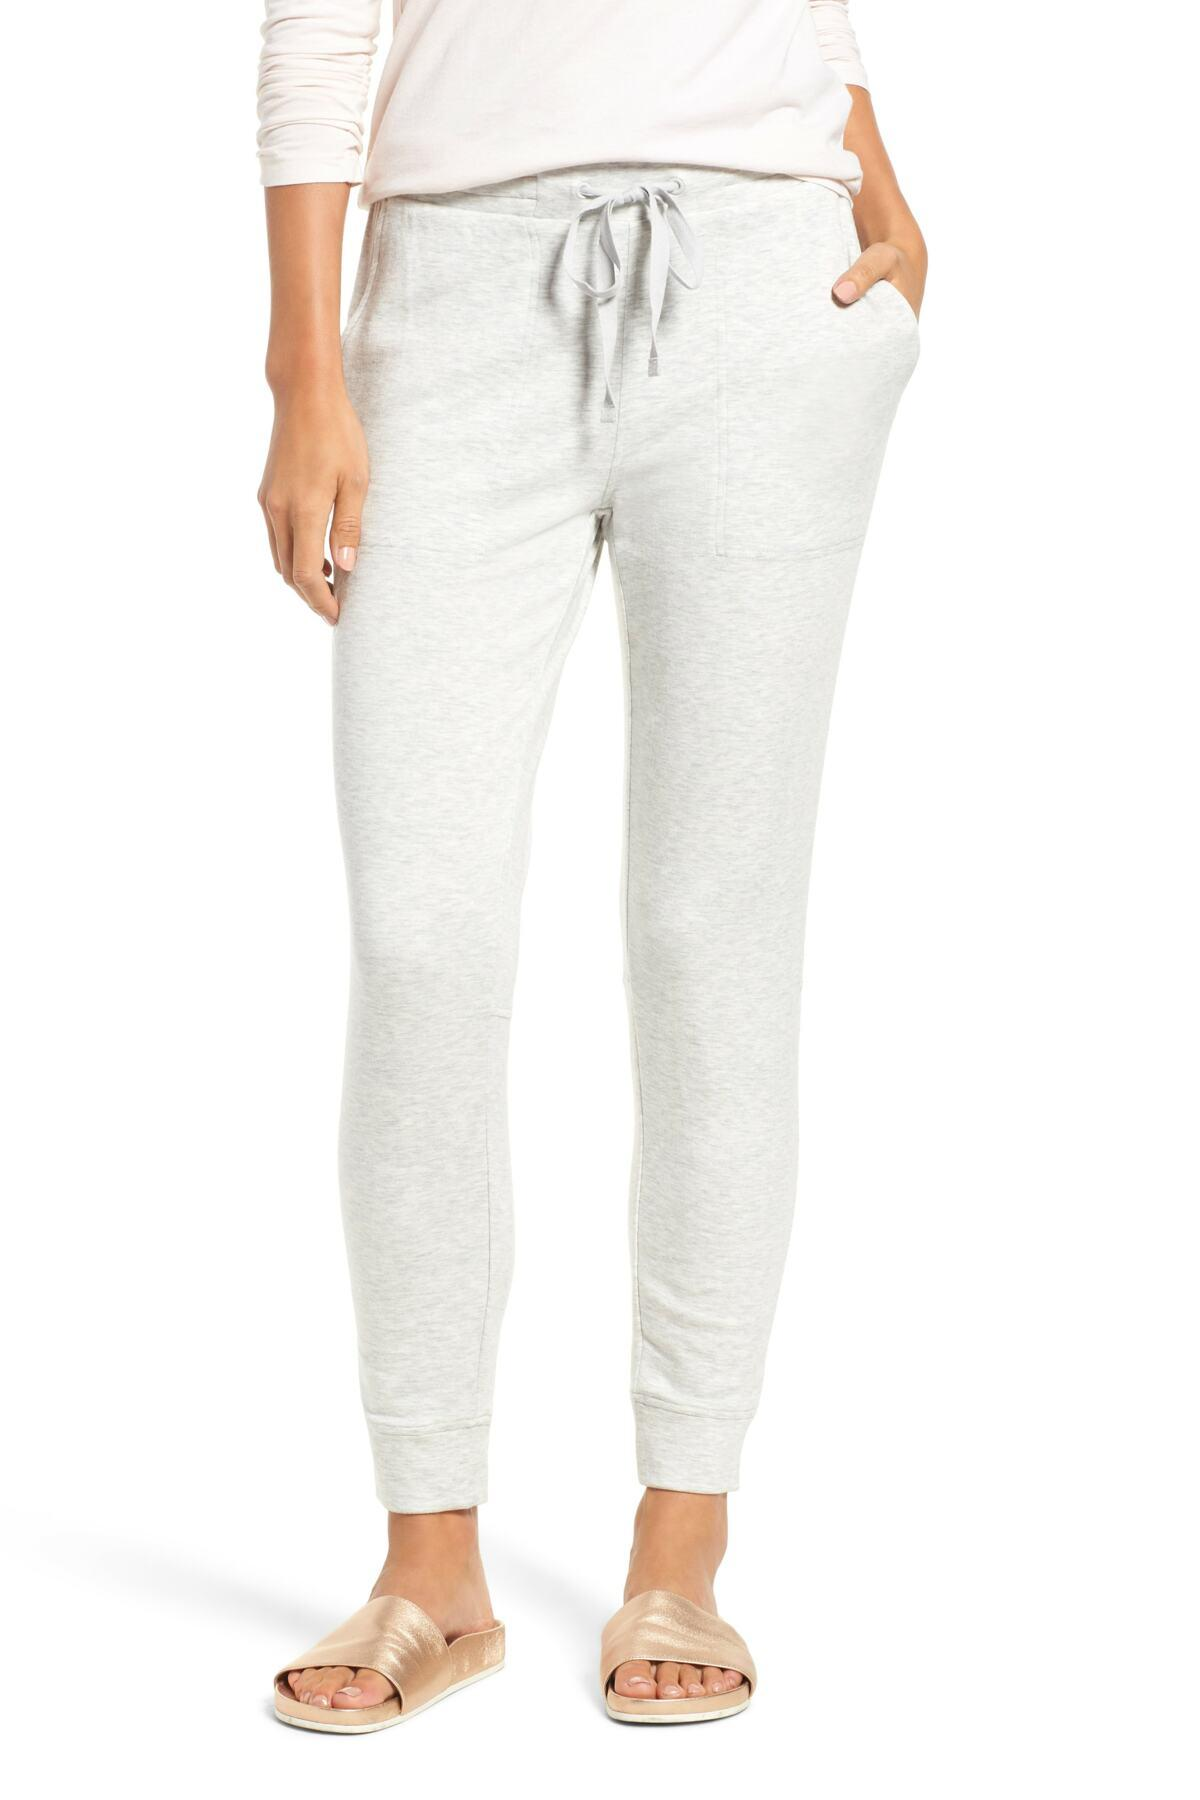 5fb77bd65f2a5 Lyst - Lou & Grey Zen Bounce Upstate Sweatpants in Gray - Save 65%